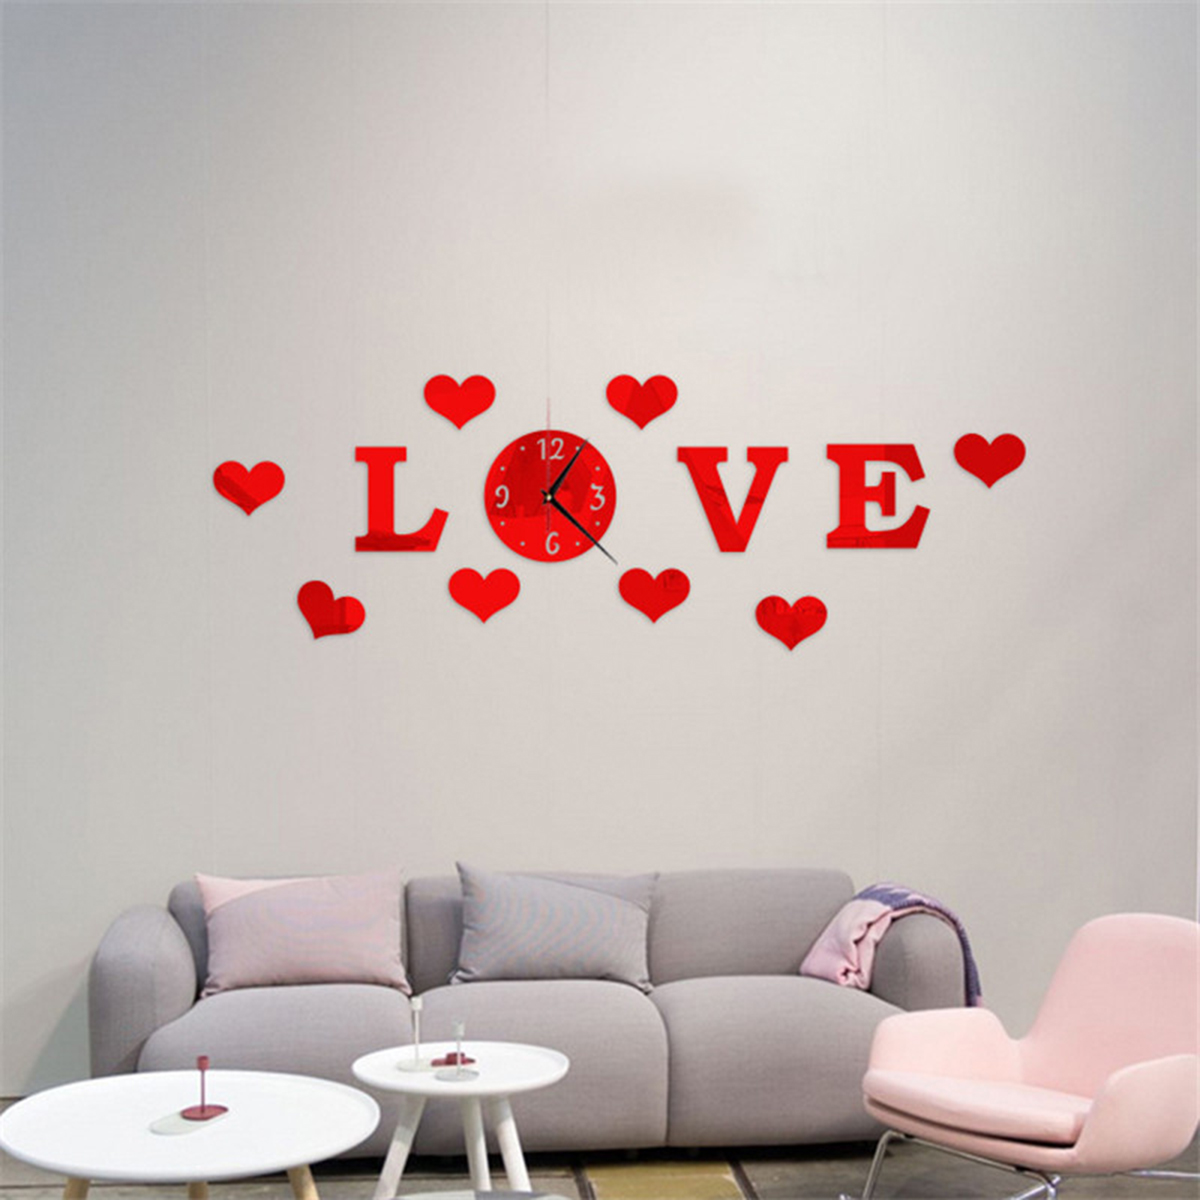 Removable-Mirror-Decal-Art-Mural-Wall-Stickers-Home-Decor-DIY-Room-Decoration thumbnail 17